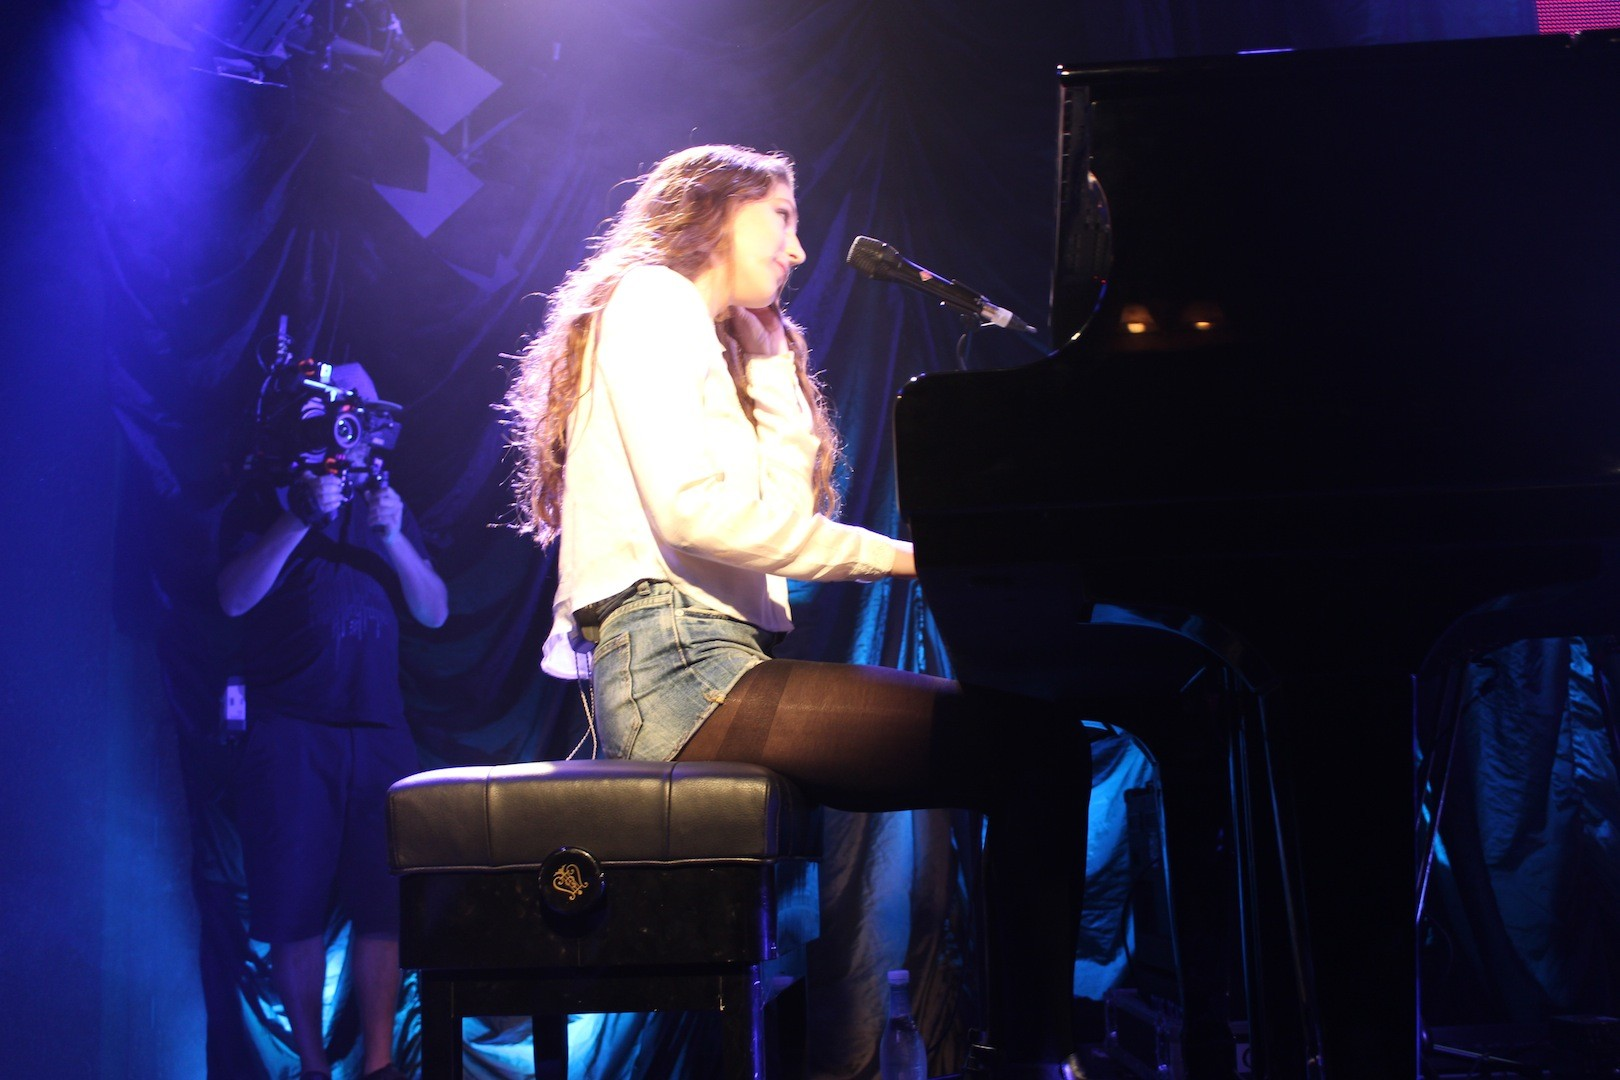 Birdy, birdy live in nz, zm radio, iHeartRadio, Warner Music NZ, Music, Music gigs, events, Rachel Hunter, beauty blog nz, fashion blog nz, style blog nz, beauty media nz, fashion media nz, angie fredatovich, gurlinterrupted, fashion, beauty